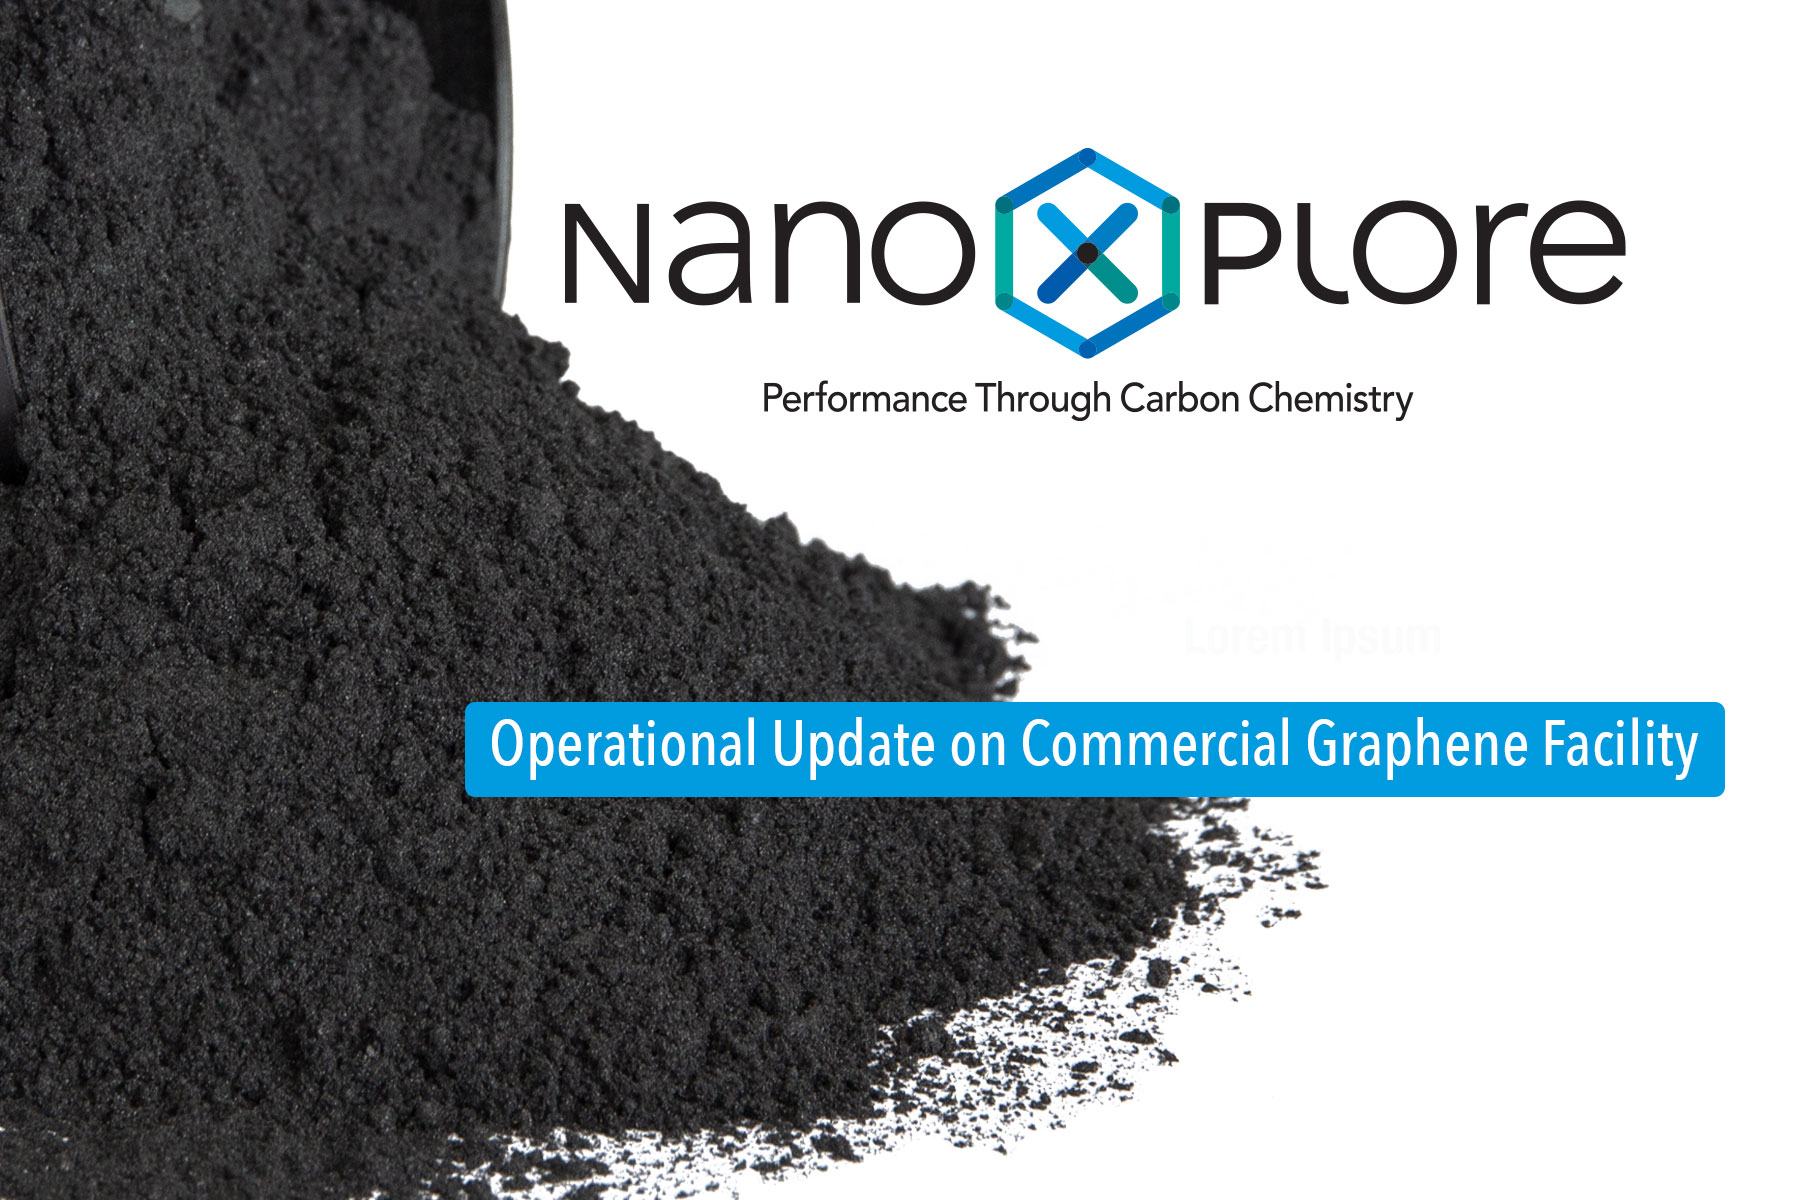 Largest Commercial Graphene Production Facility